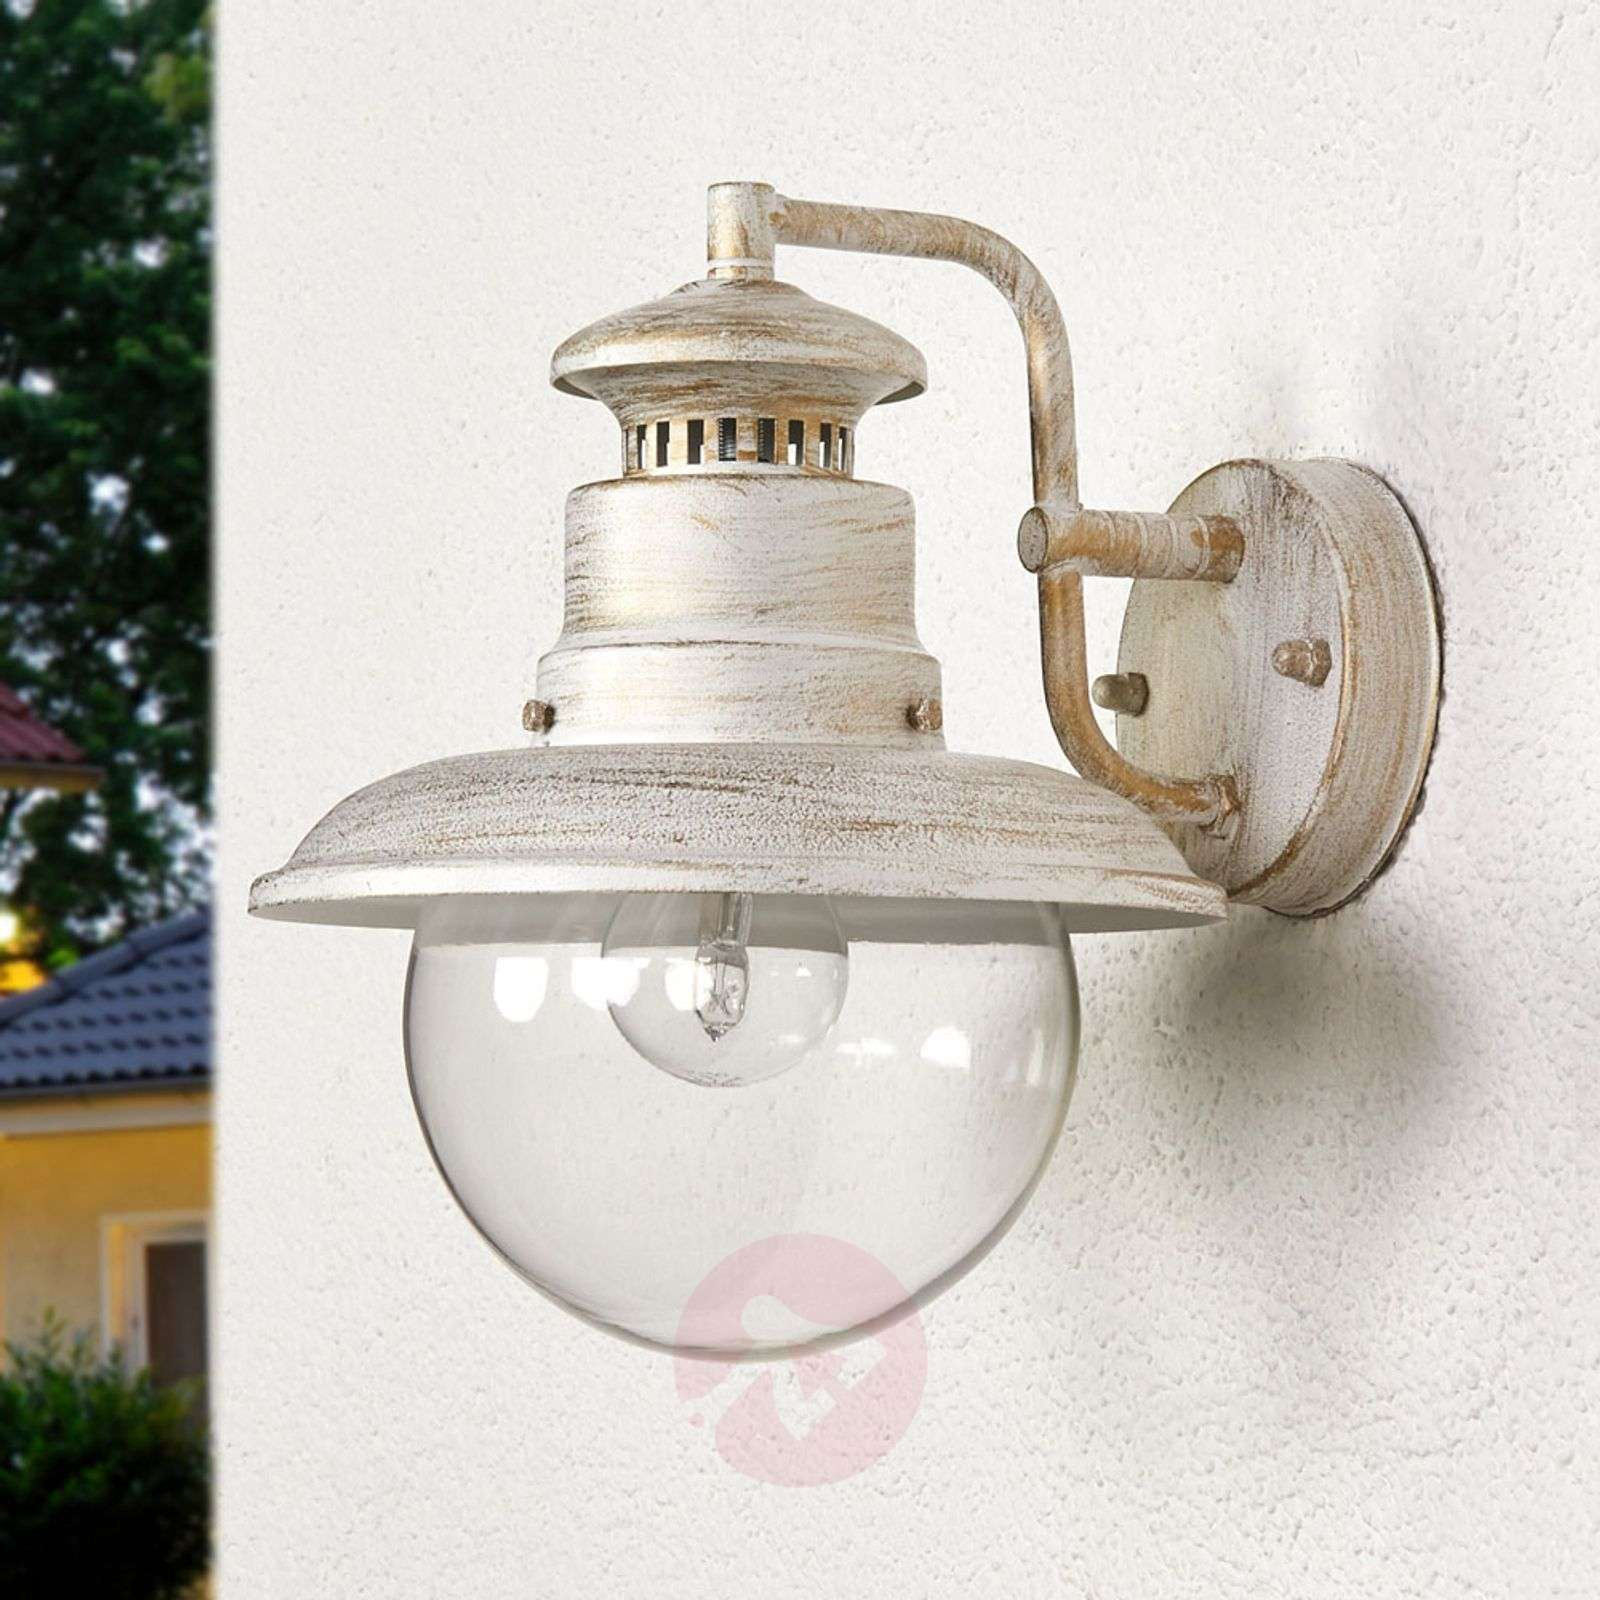 Artu outdoor wall light with an antique look-1507133-01